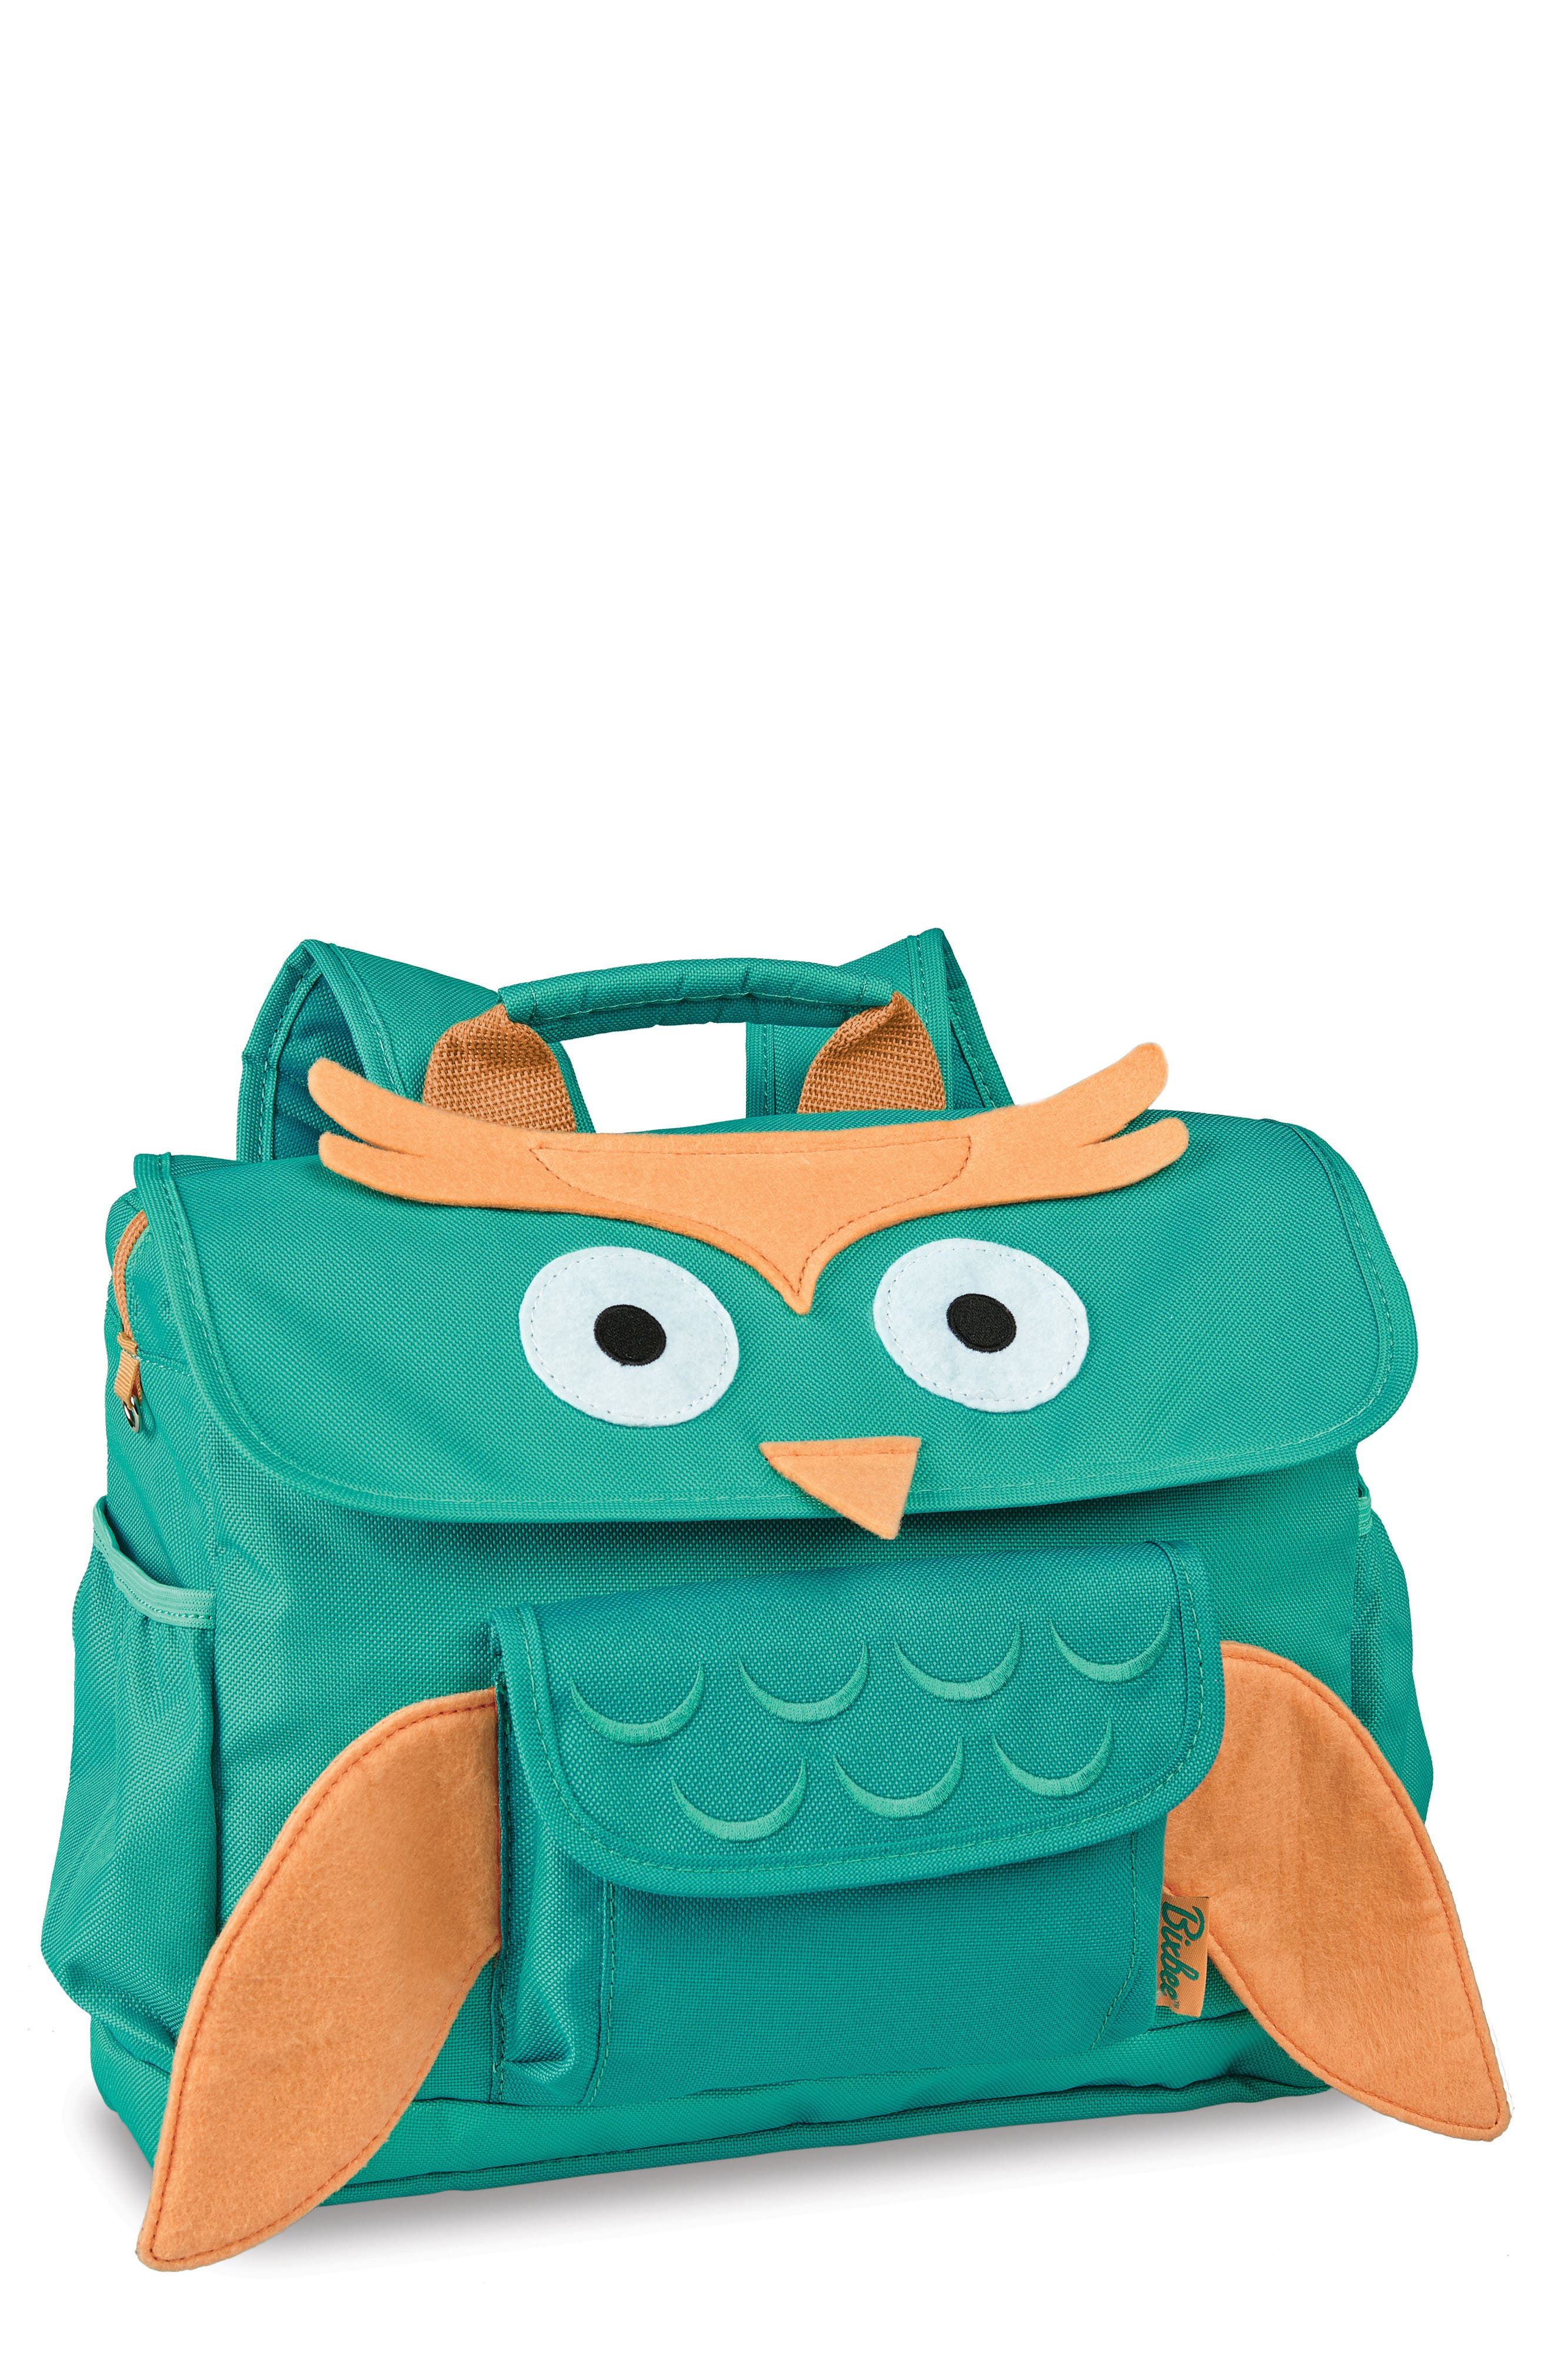 Animal Pack – Owl Backpack,                             Main thumbnail 1, color,                             440